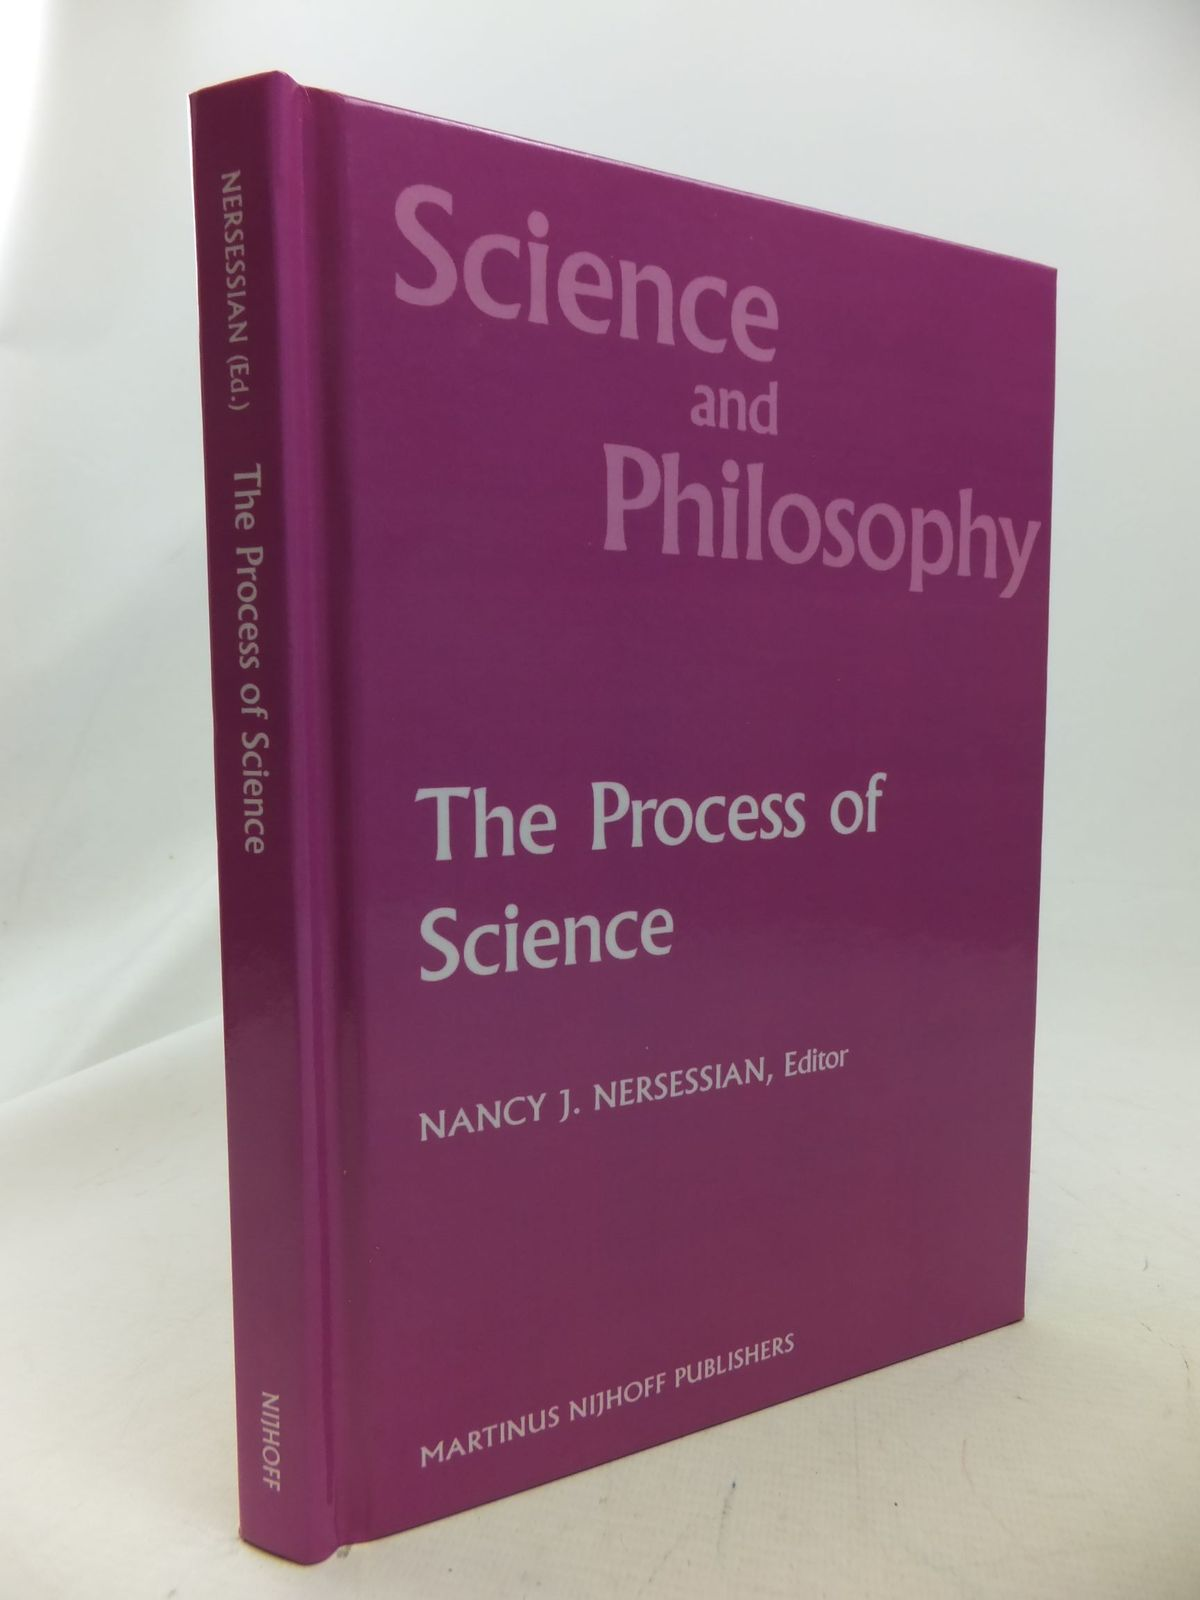 Photo of SCIENCE AND PHILOSOPHY THE PROCESS OF SCIENCE written by Nersessian, Nancy J. published by Martinus Nijhoff (STOCK CODE: 1710847)  for sale by Stella & Rose's Books